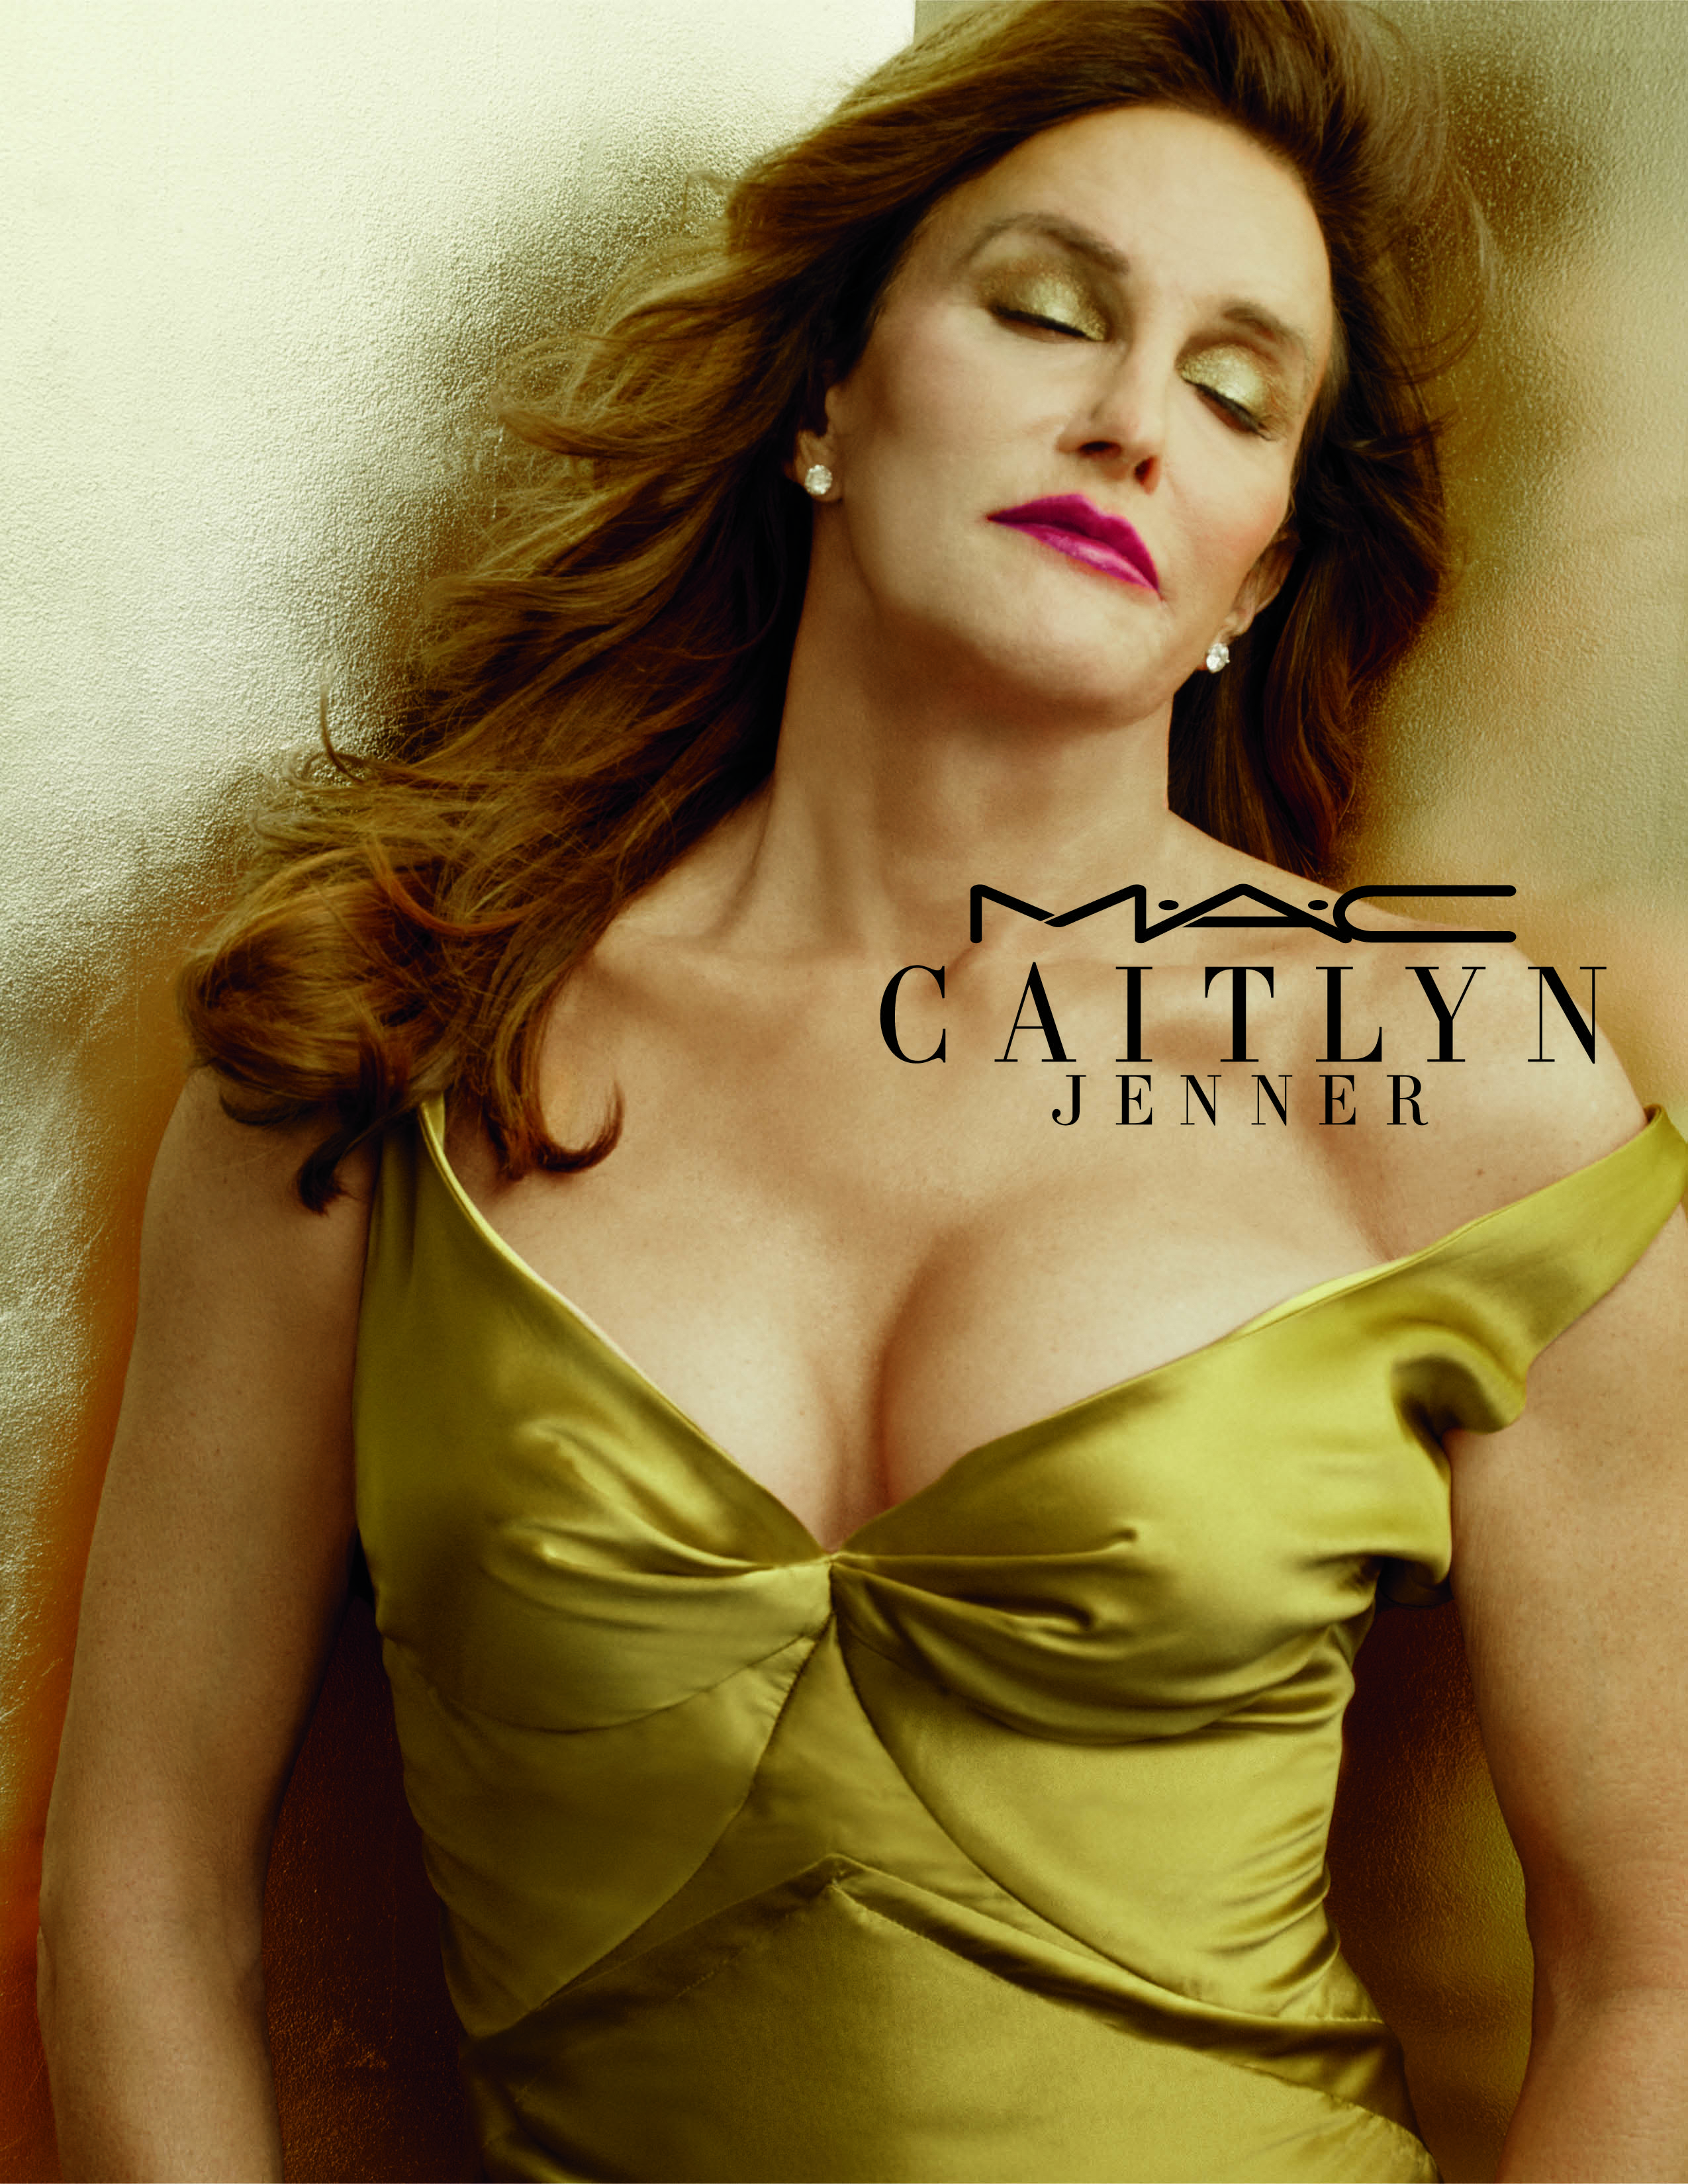 Caitlyn Jenner and Mac Team Up for Makeup Collaboration